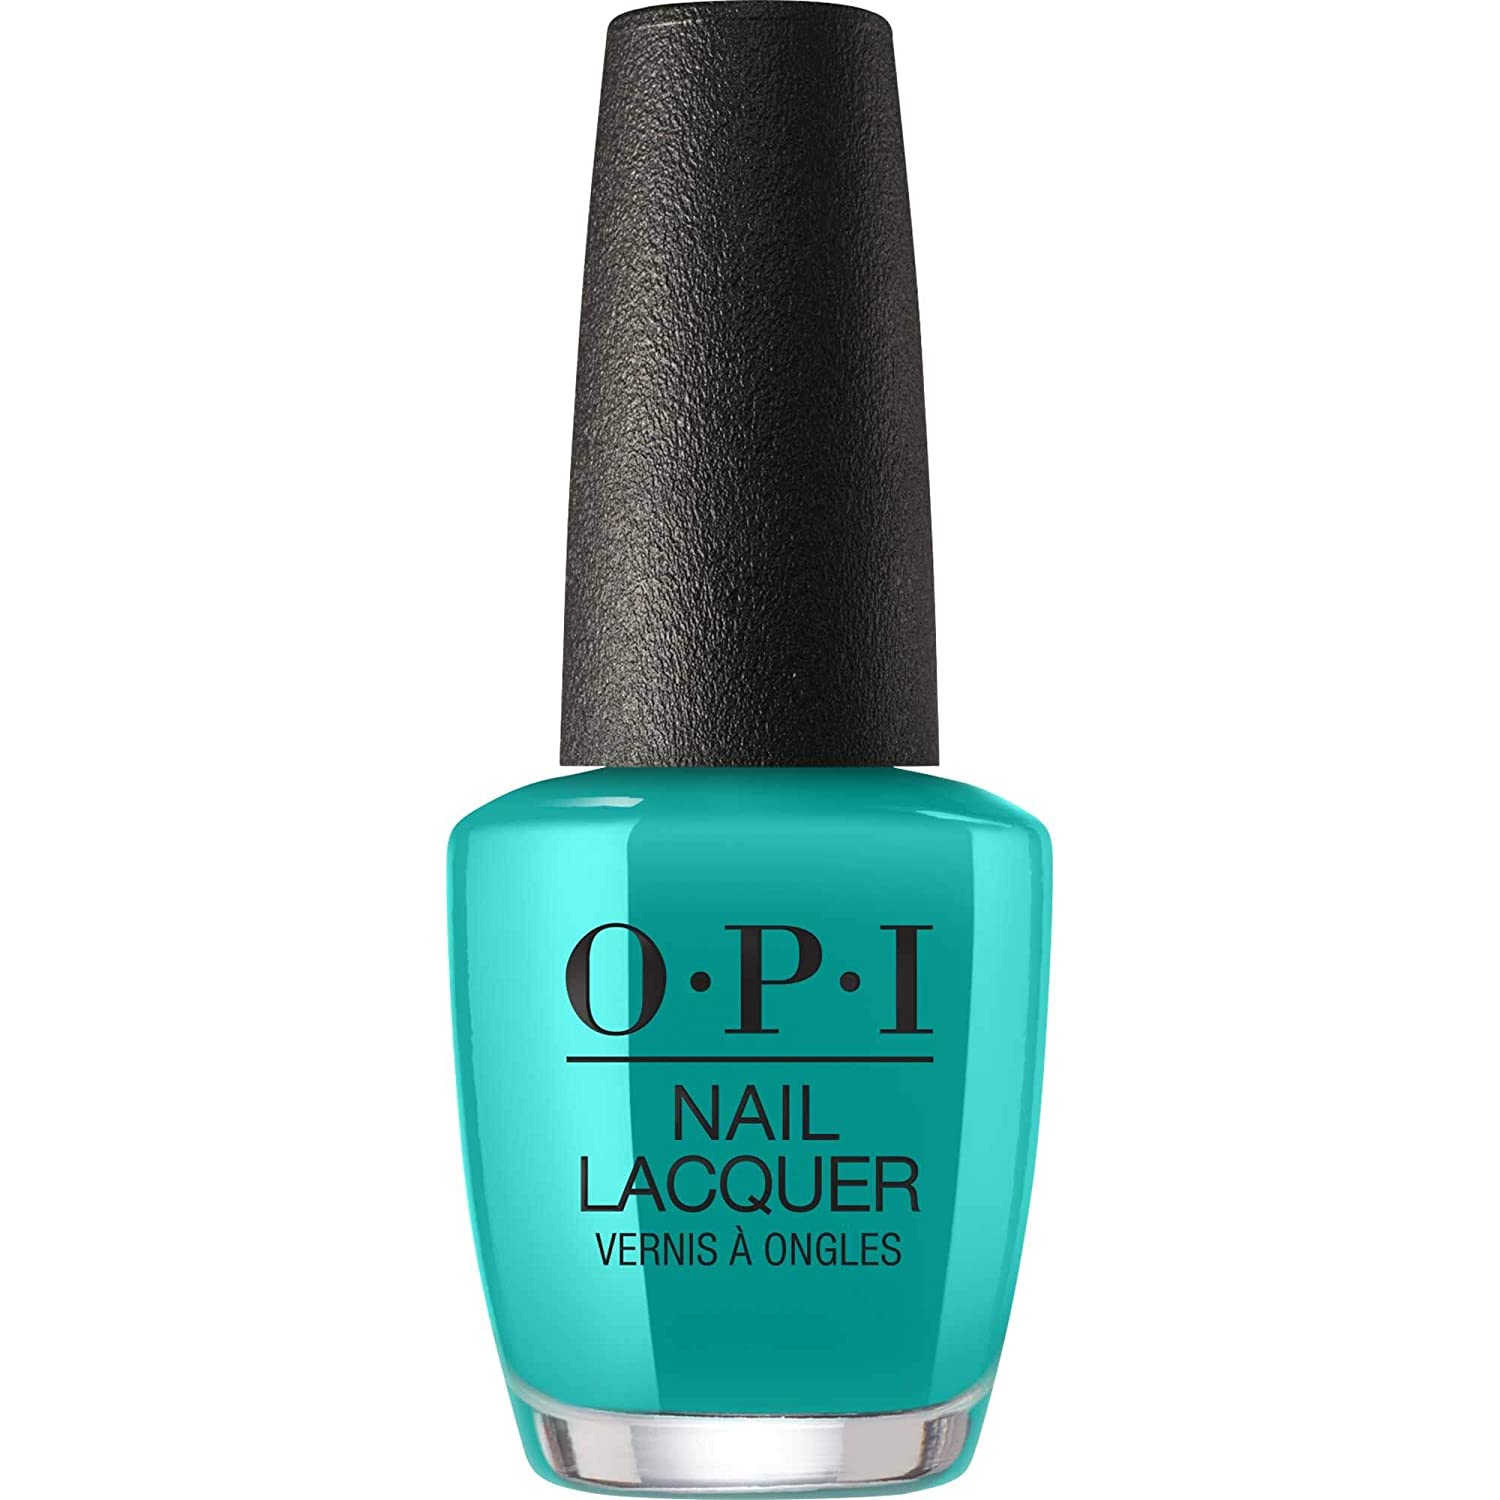 OPI Nail Lacquer, Dance Party 'teal Dawn